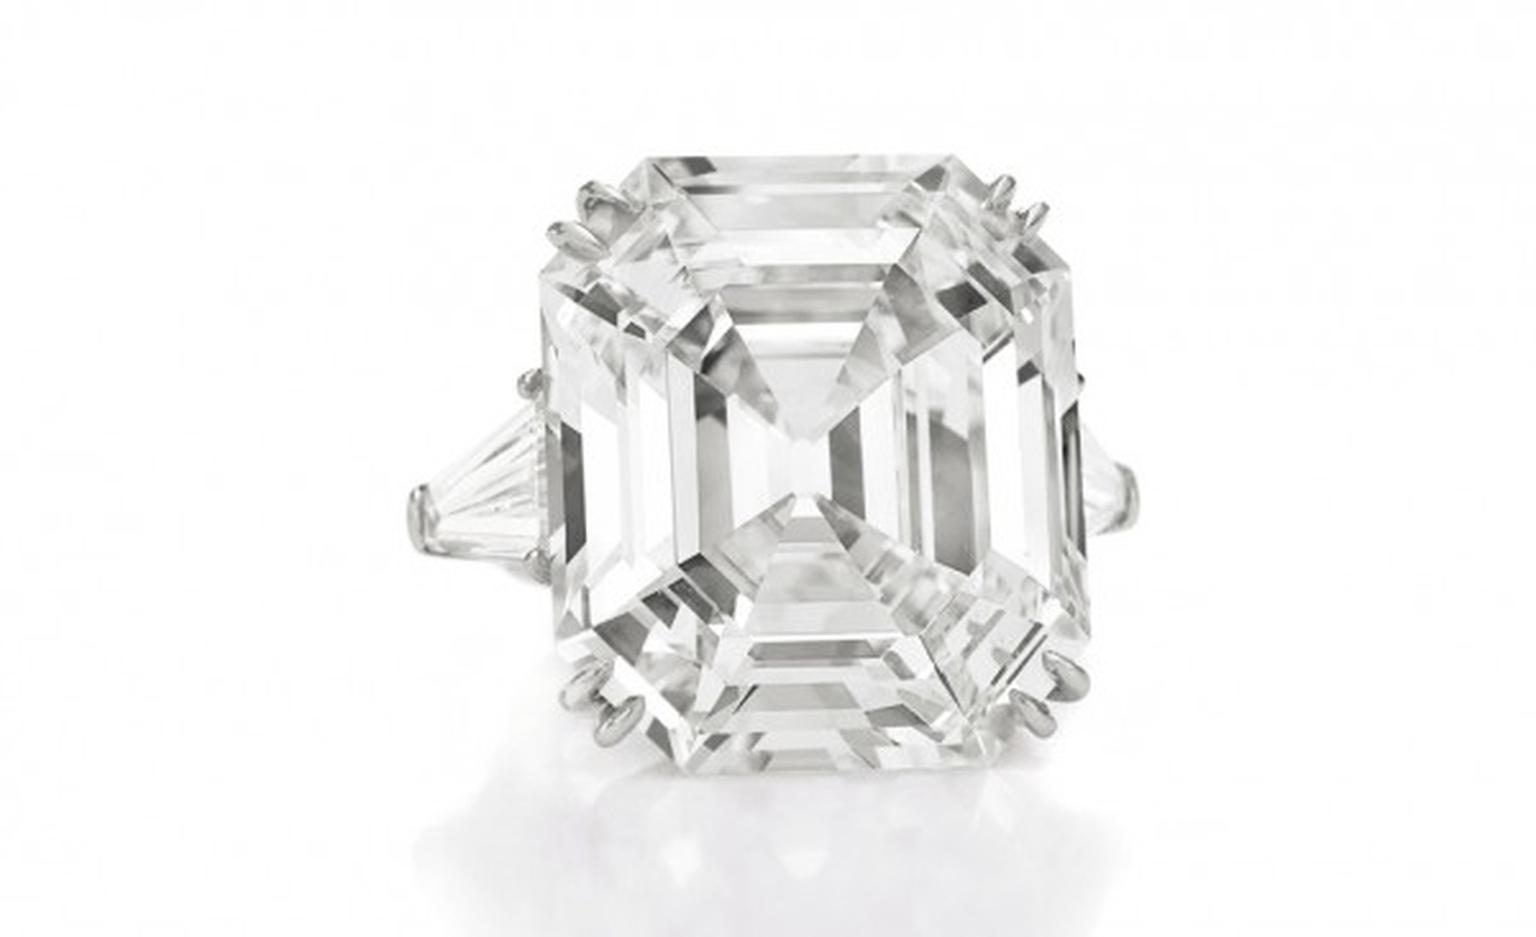 The engagement ring from Richard Burton, now the Elizabeth Taylor diamond